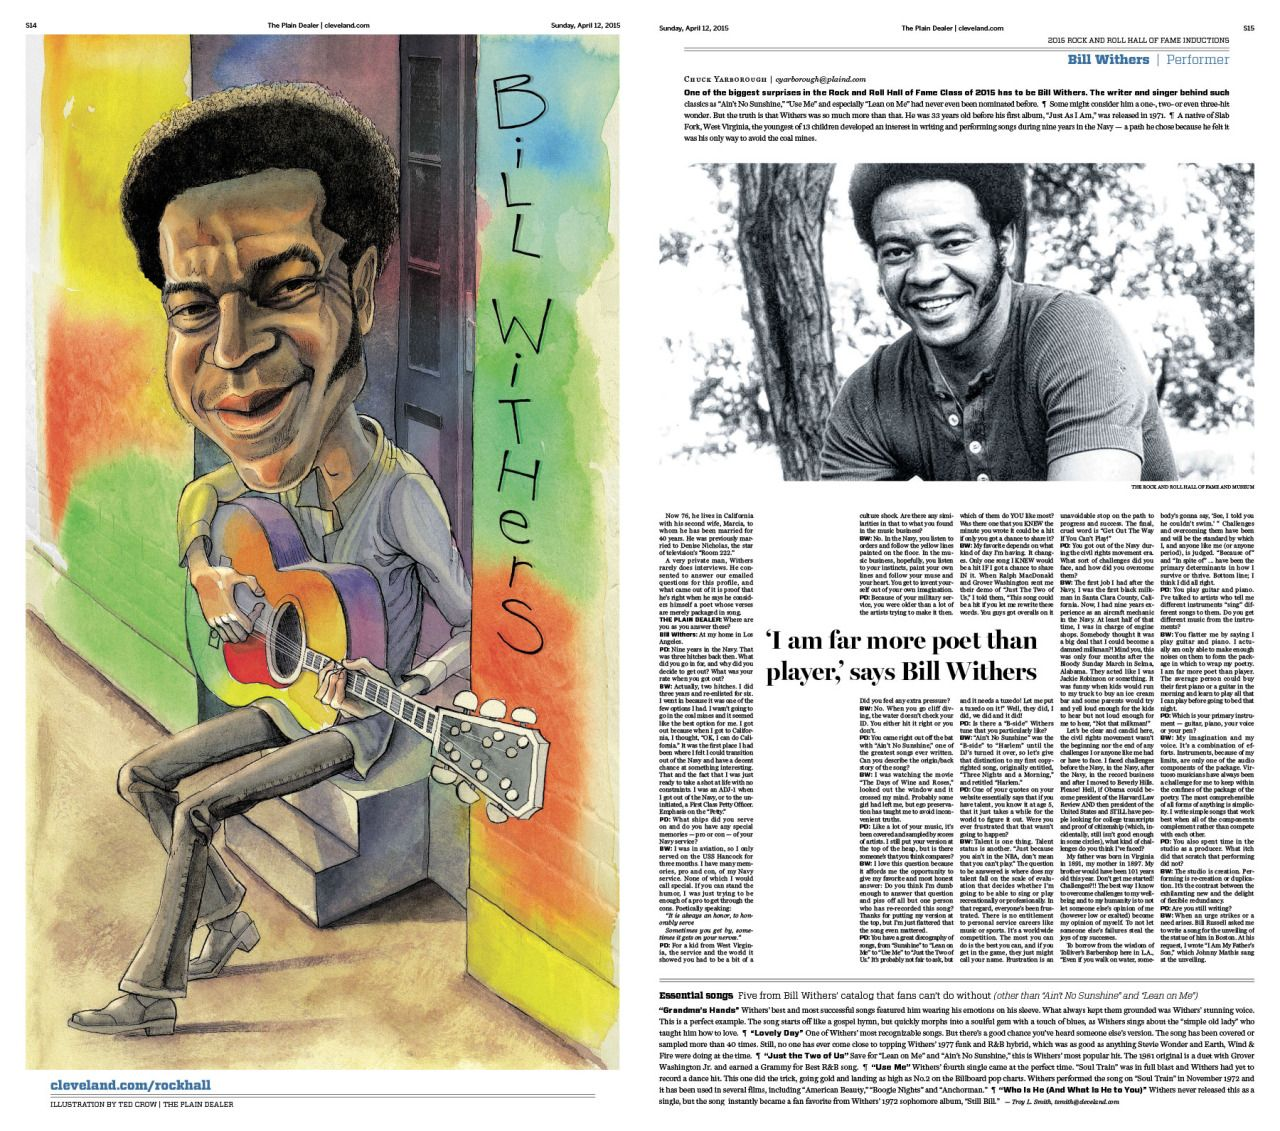 #BillWithers #RockHall2015 induction preview. Ted Crow, illustrator; Jane Mitchell, designer; David Kordalski & Josh Crutchmer, art directors